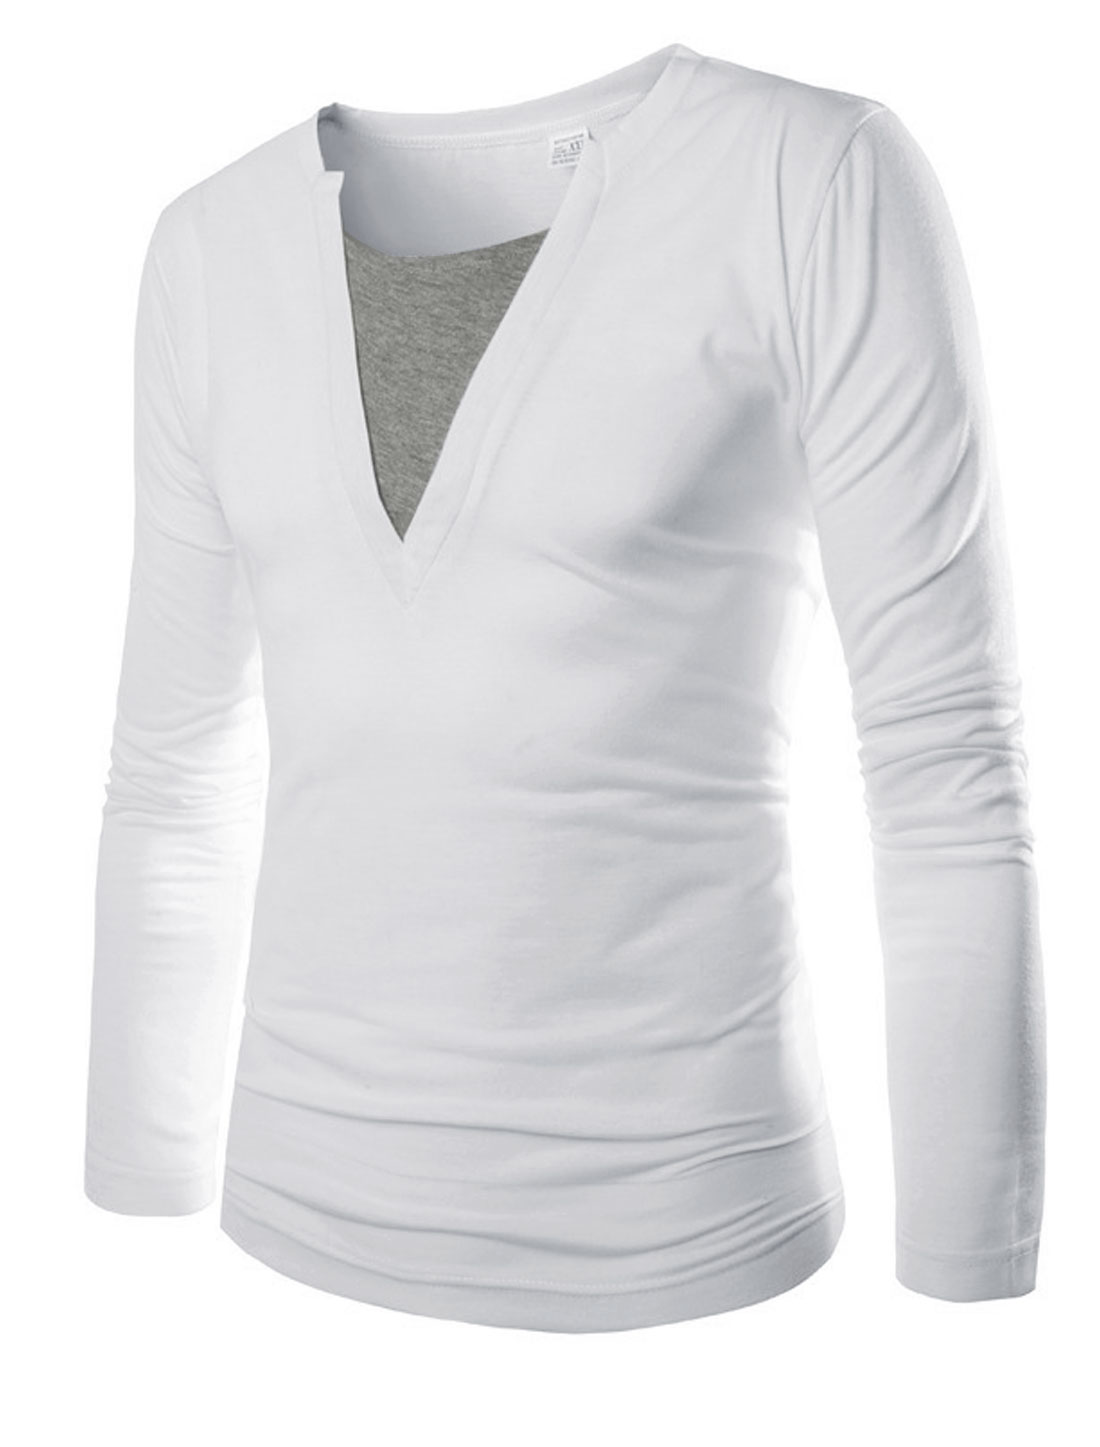 Men White Slipover Contrast Detail Layered Shirts Long Sleeves T-Shirt M